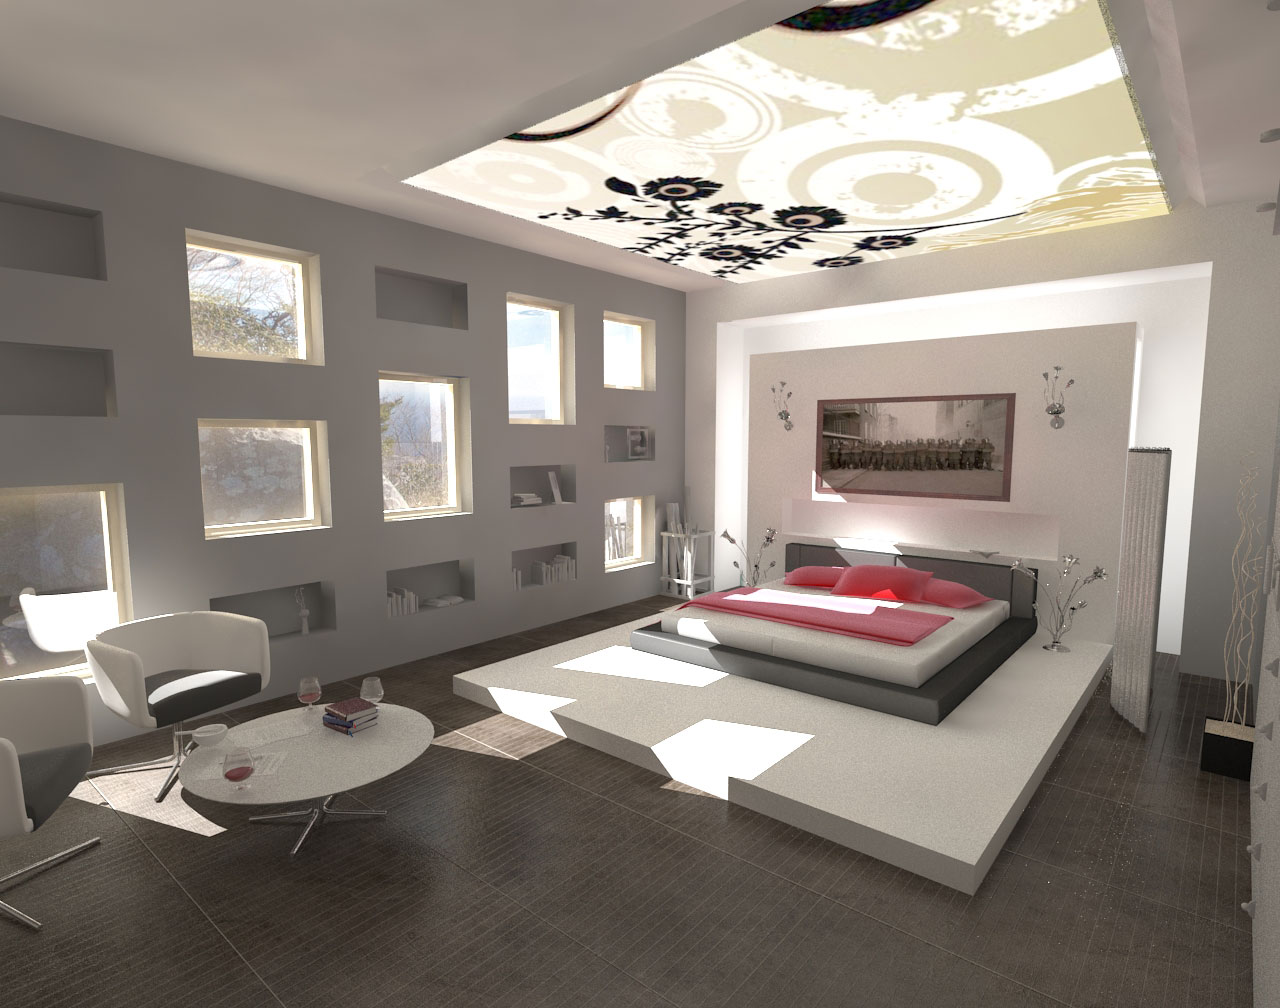 Decorations minimalist design modern bedroom interior for Interior designs bedroom